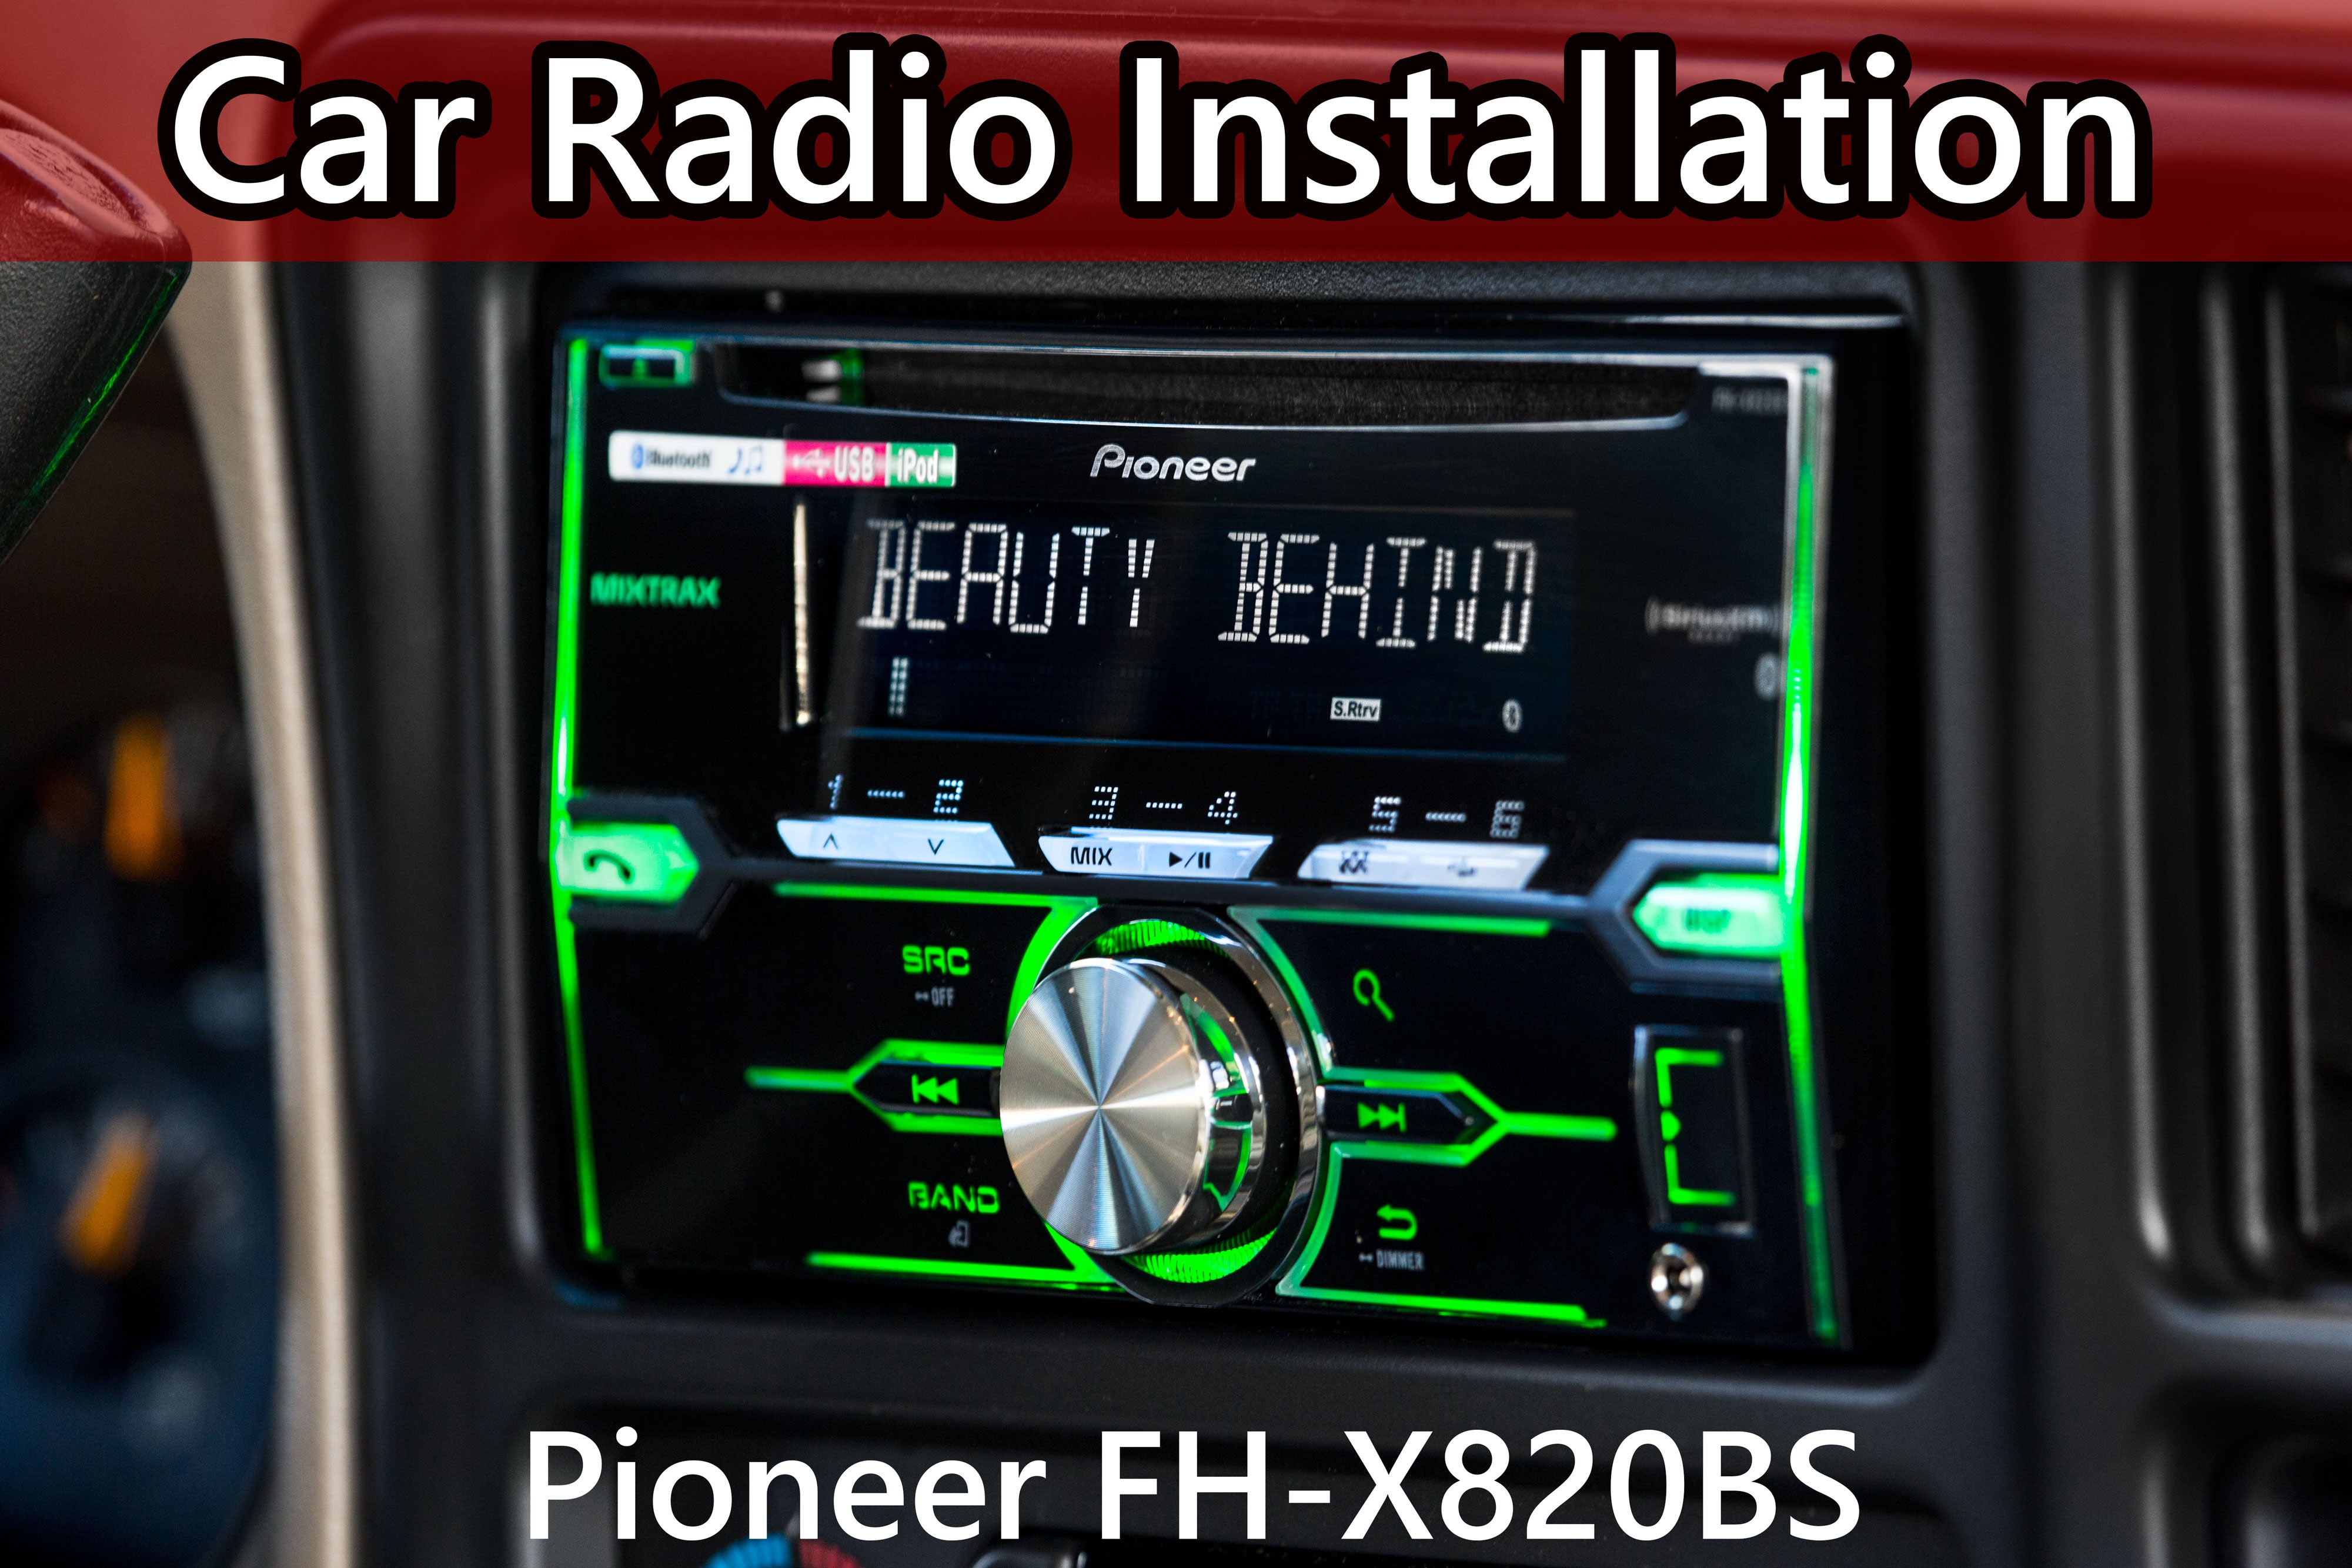 Complete Car Stereo Installation – Pioneer FH-X820BS